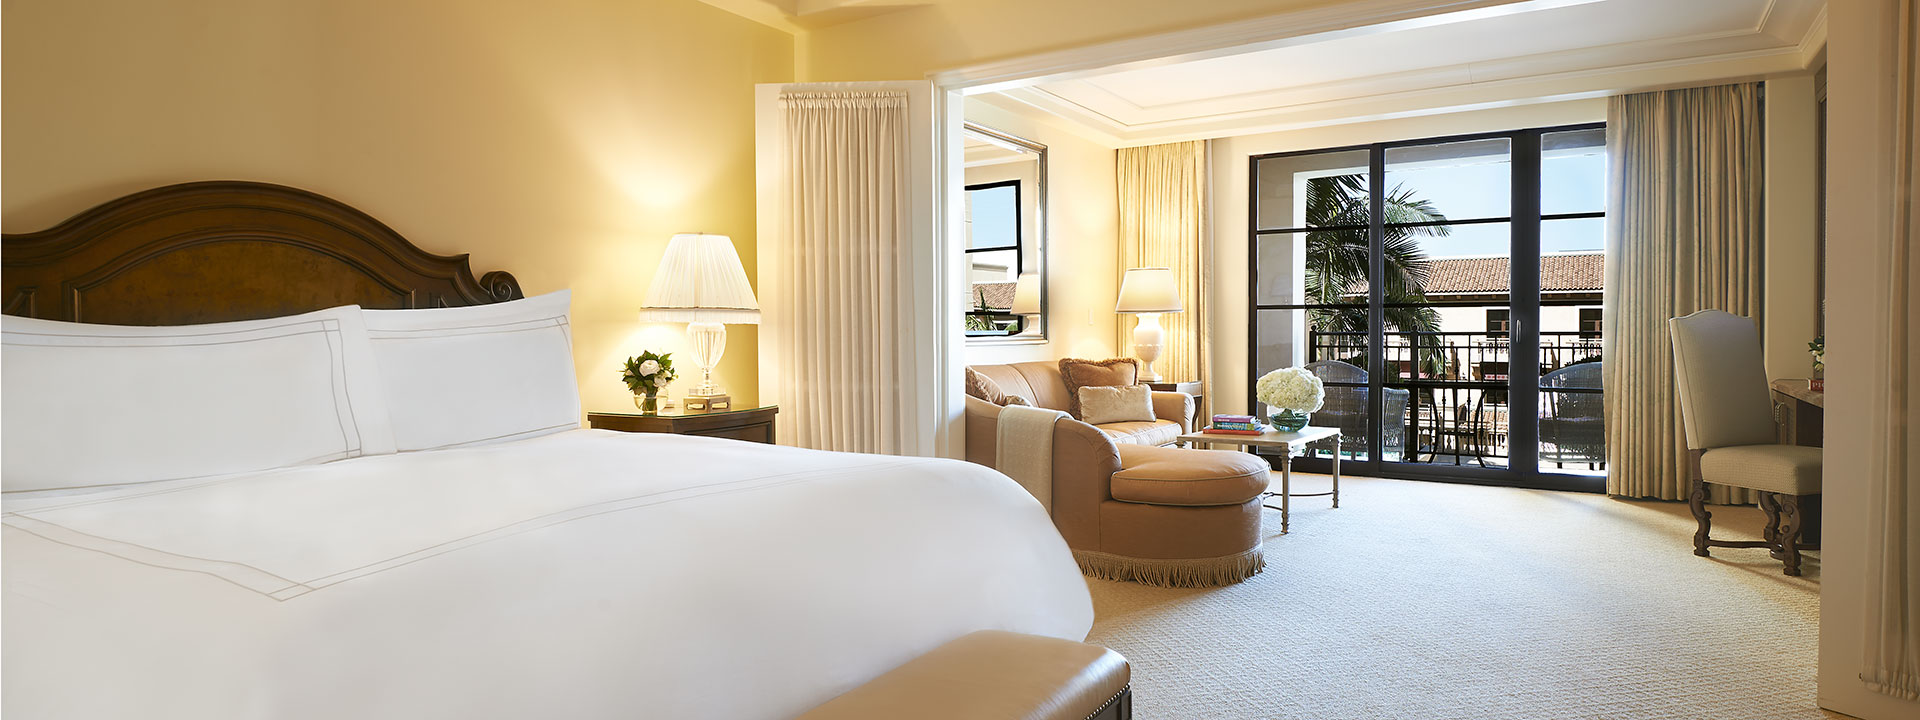 Executive Suite bedroom and living room view